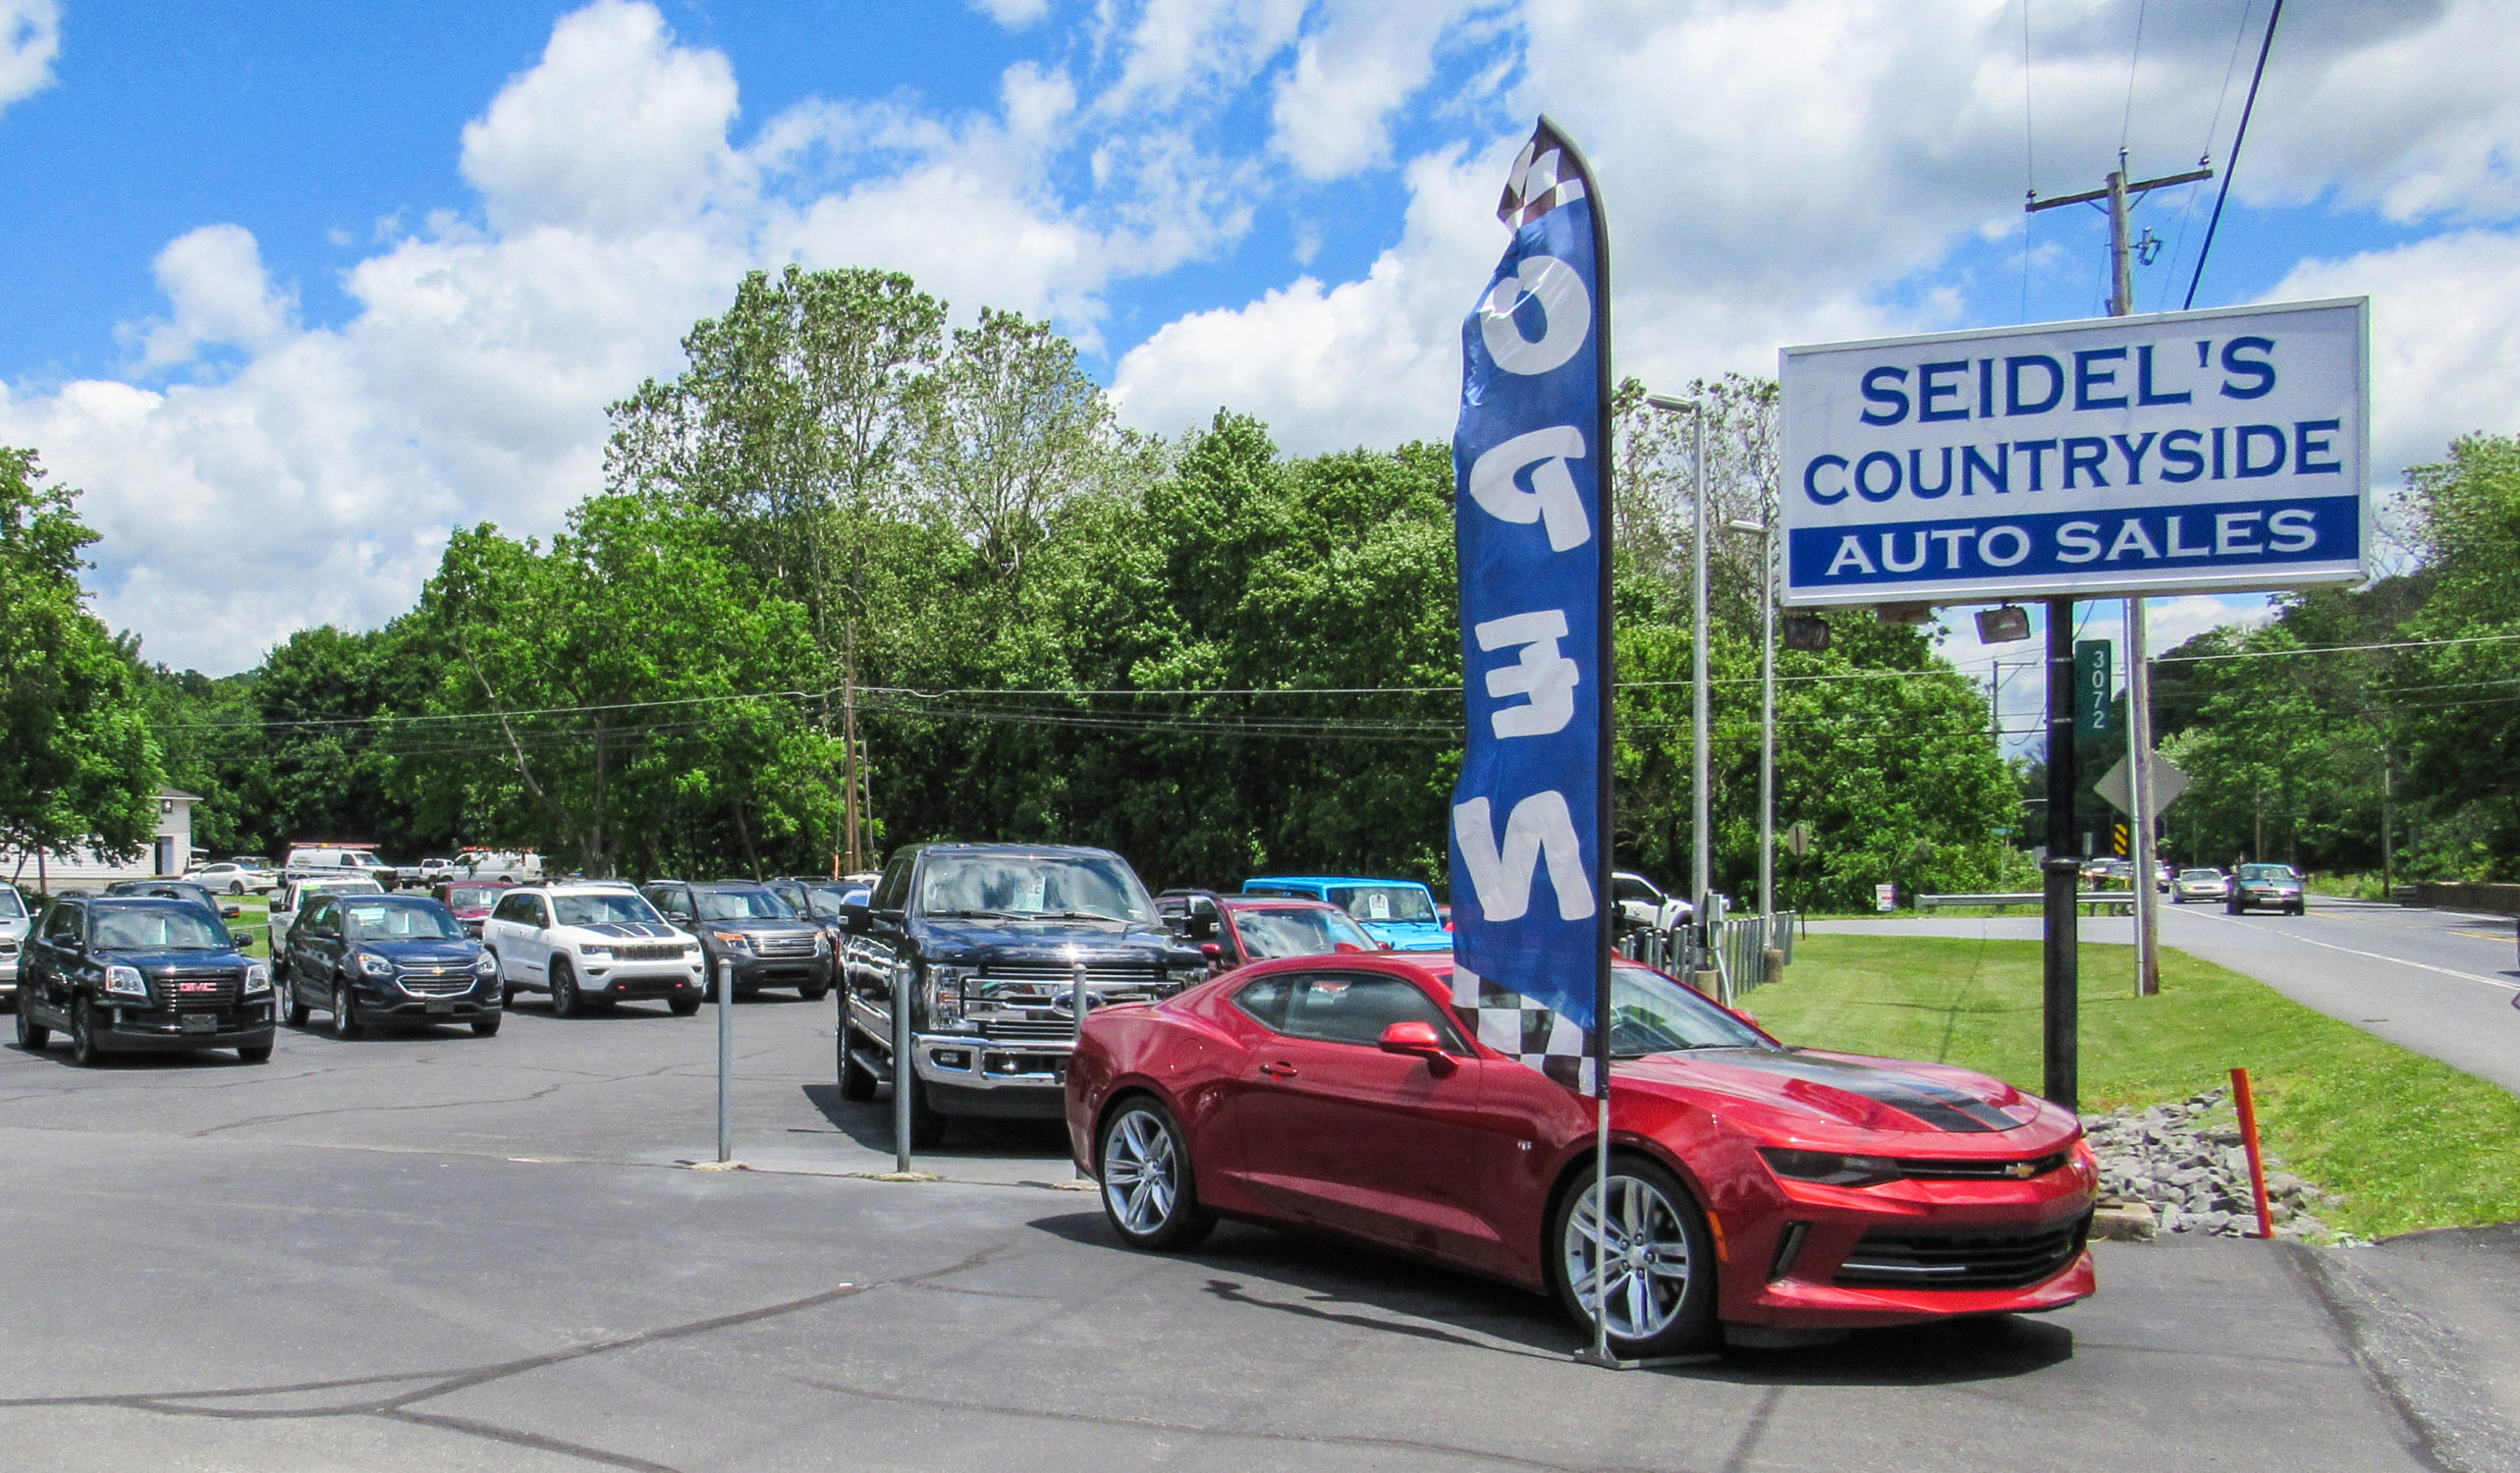 Used Car Dealerships In Lancaster Pa >> Seidel Countryside Auto Sales Quality Used Vehicles With